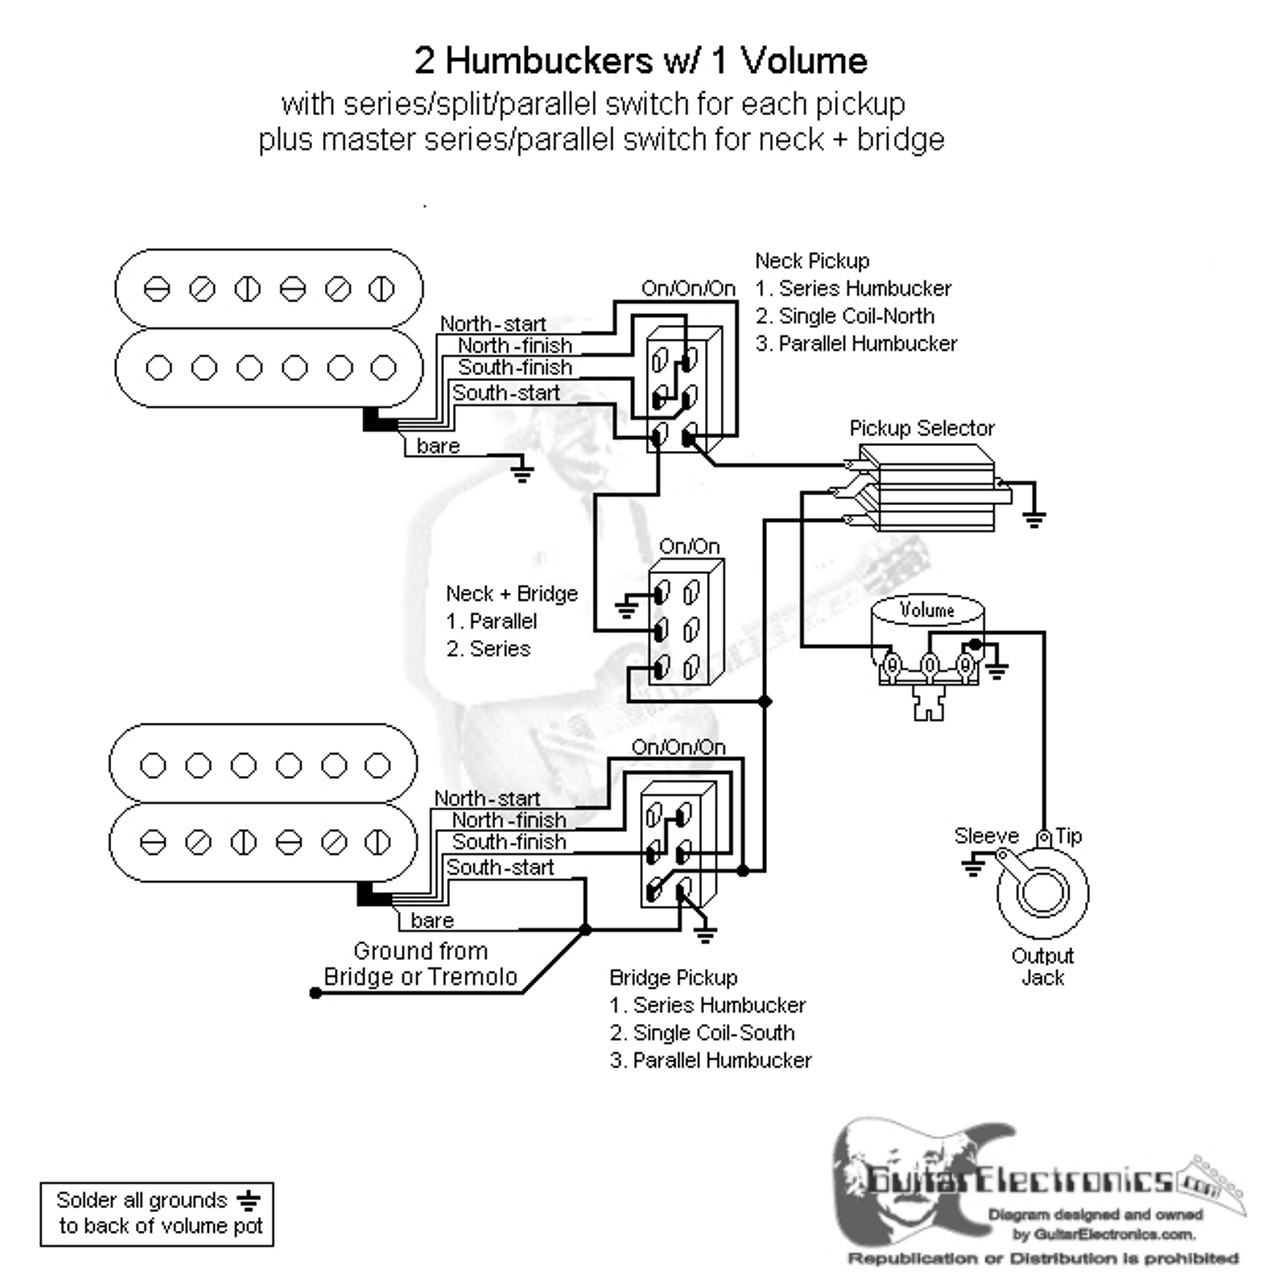 pickup wiring this diagram shows how to 2 hbs 3 way toggle 1 vol series split parallel u0026 master series parallelfor split [ 1280 x 1280 Pixel ]